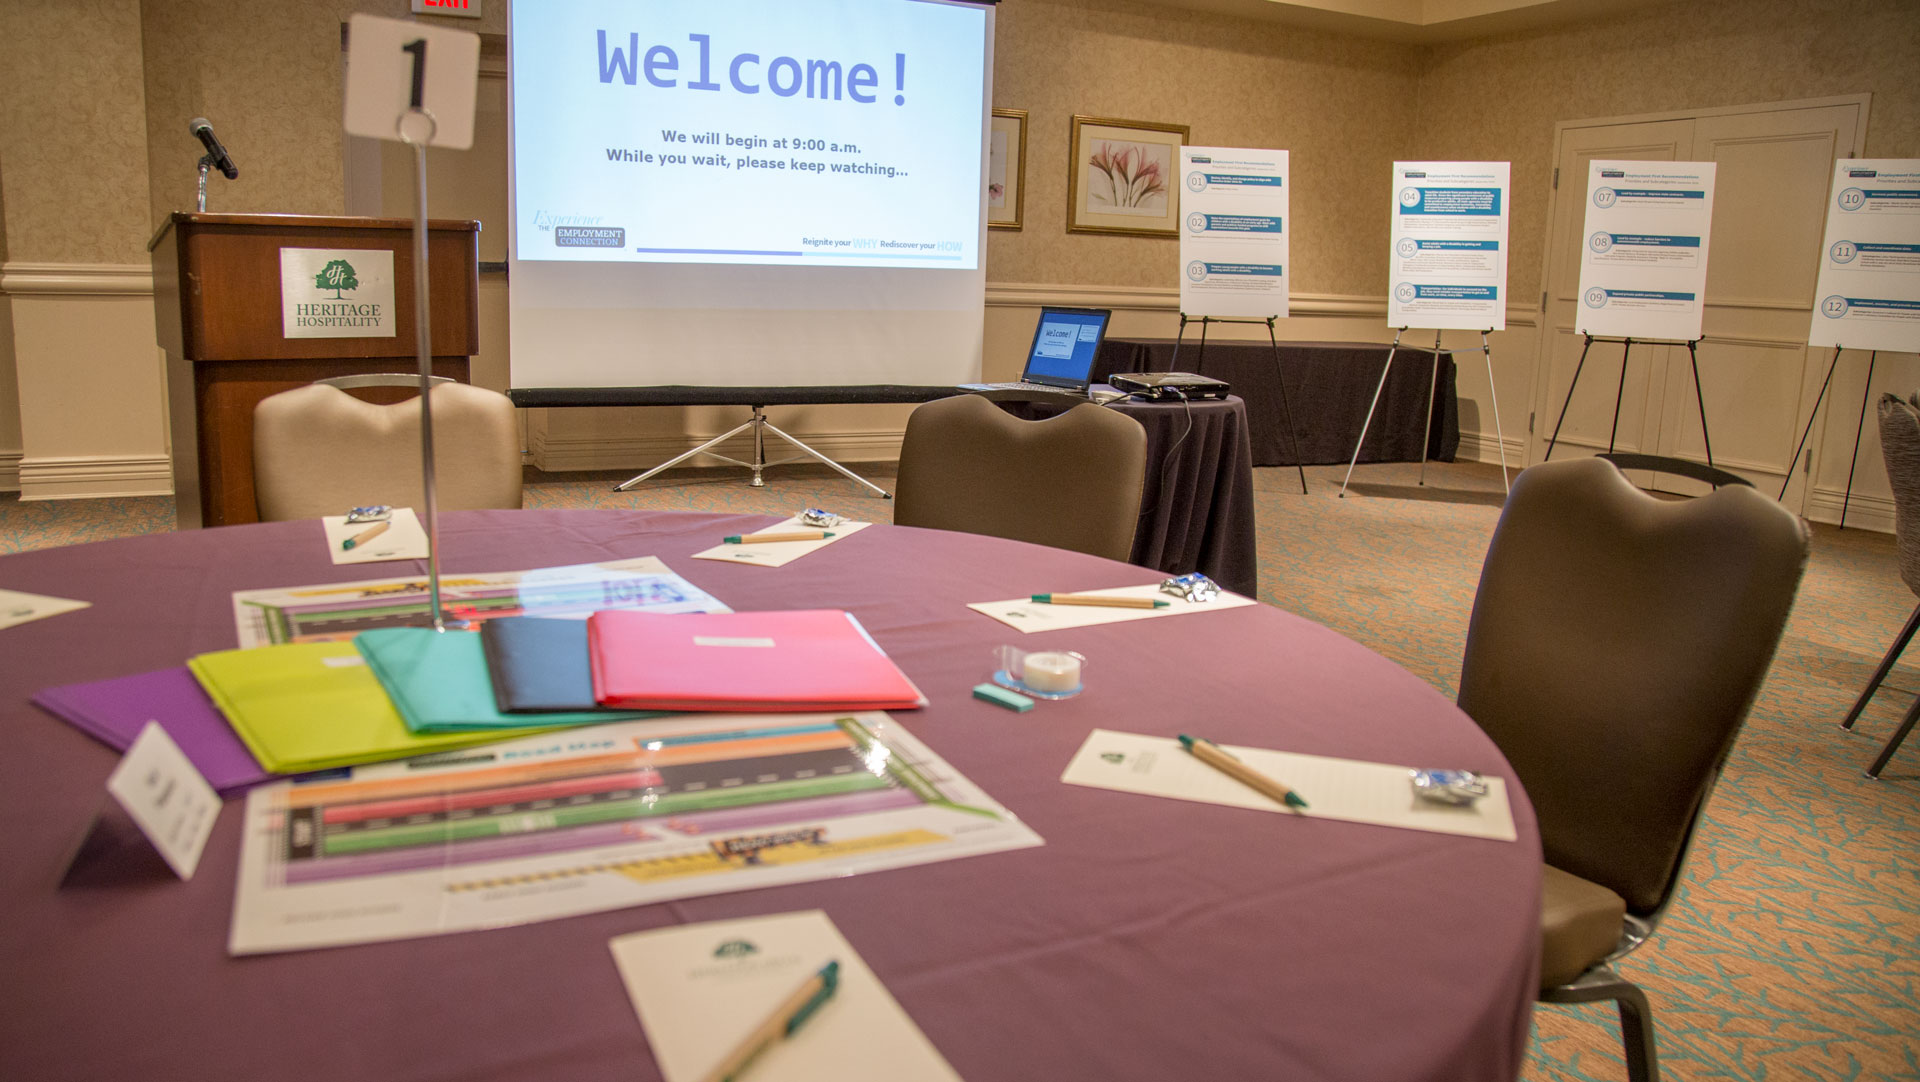 Custom Conference Welcome Graphics and Materials